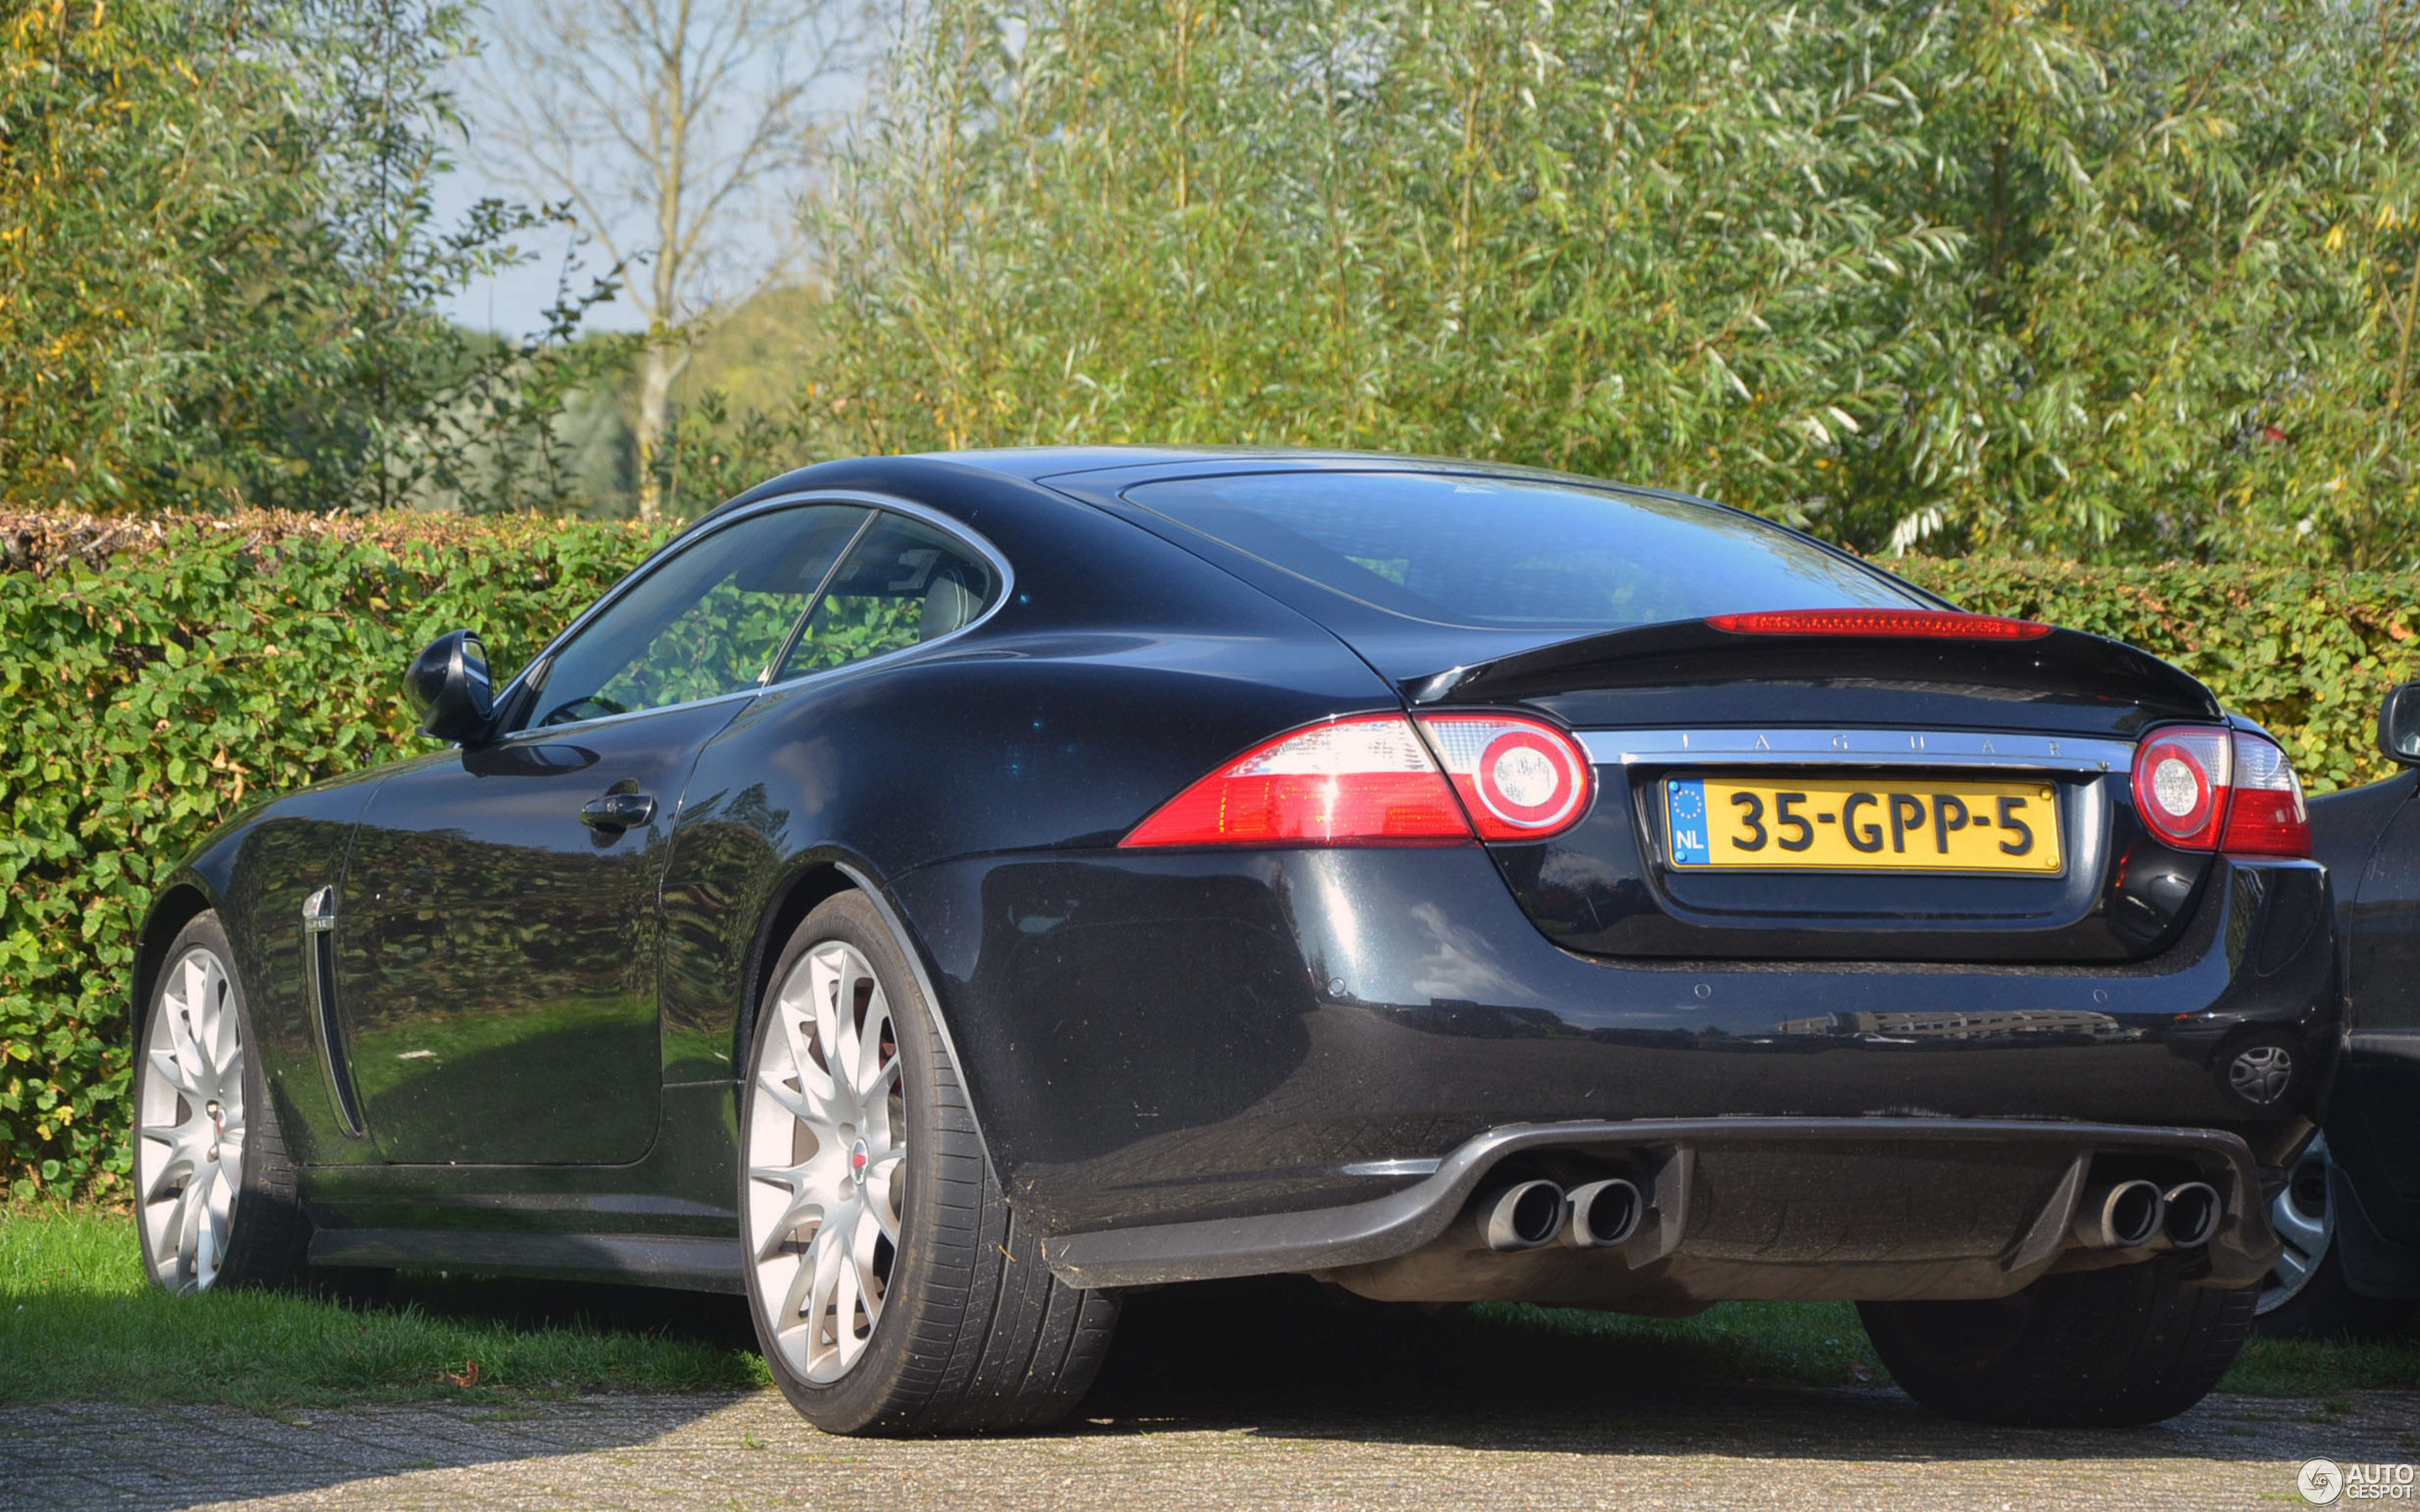 supercharged sale columbia inventory of xk bwk jaguar for xkr